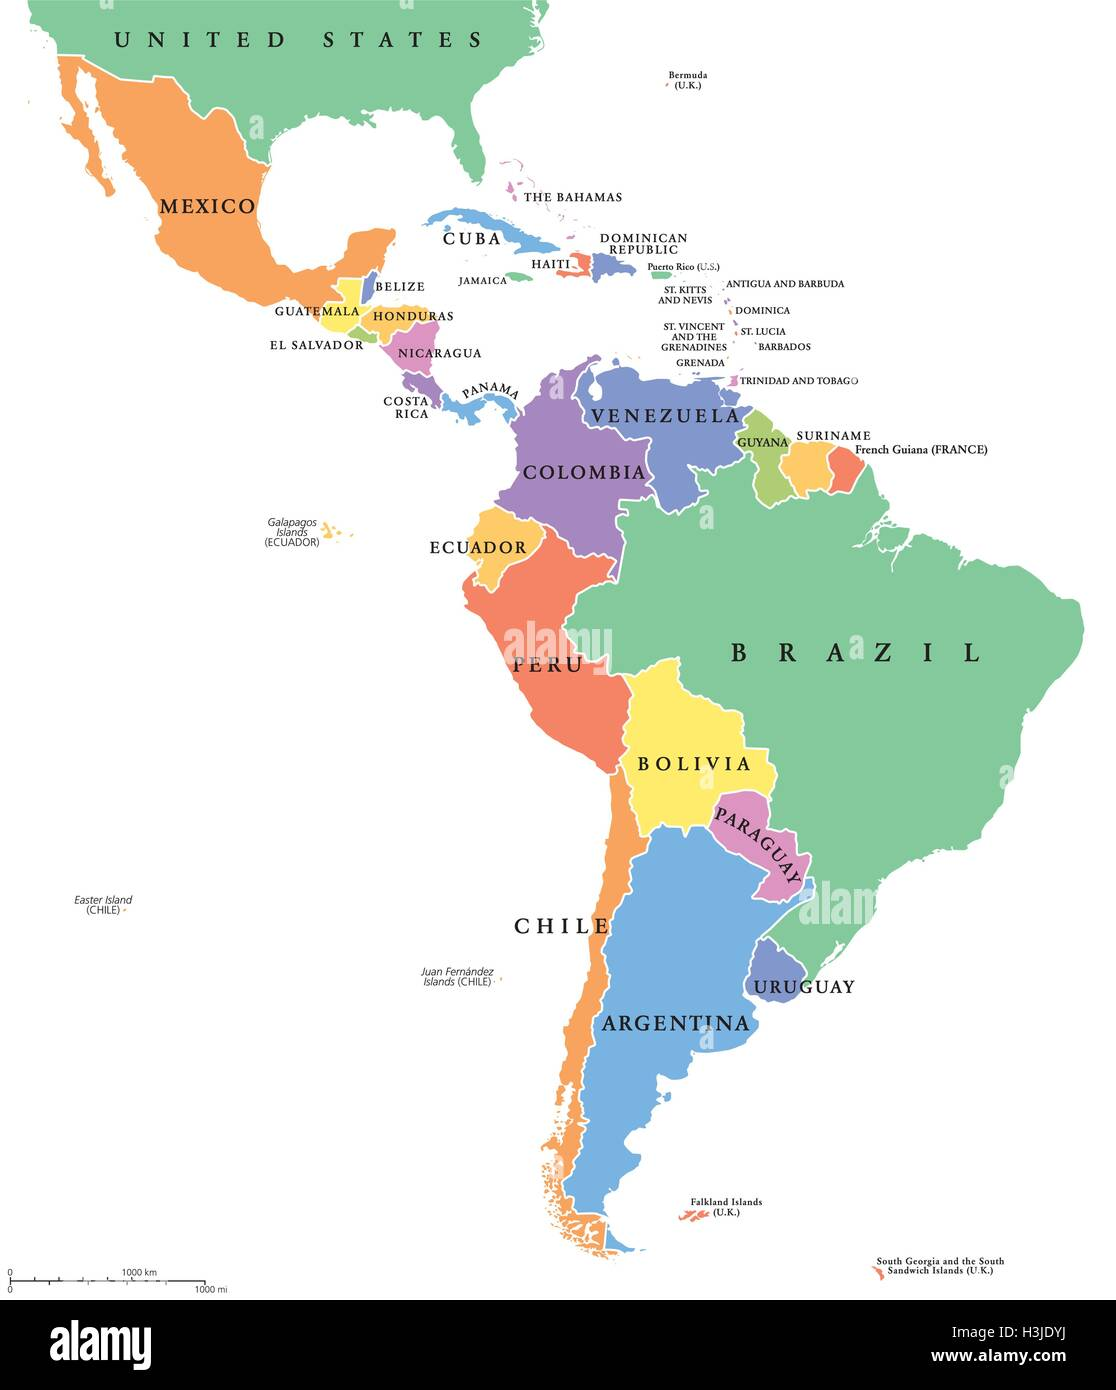 Latin america single states political map countries in different latin america single states political map countries in different colors with national borders english country names vector gumiabroncs Images